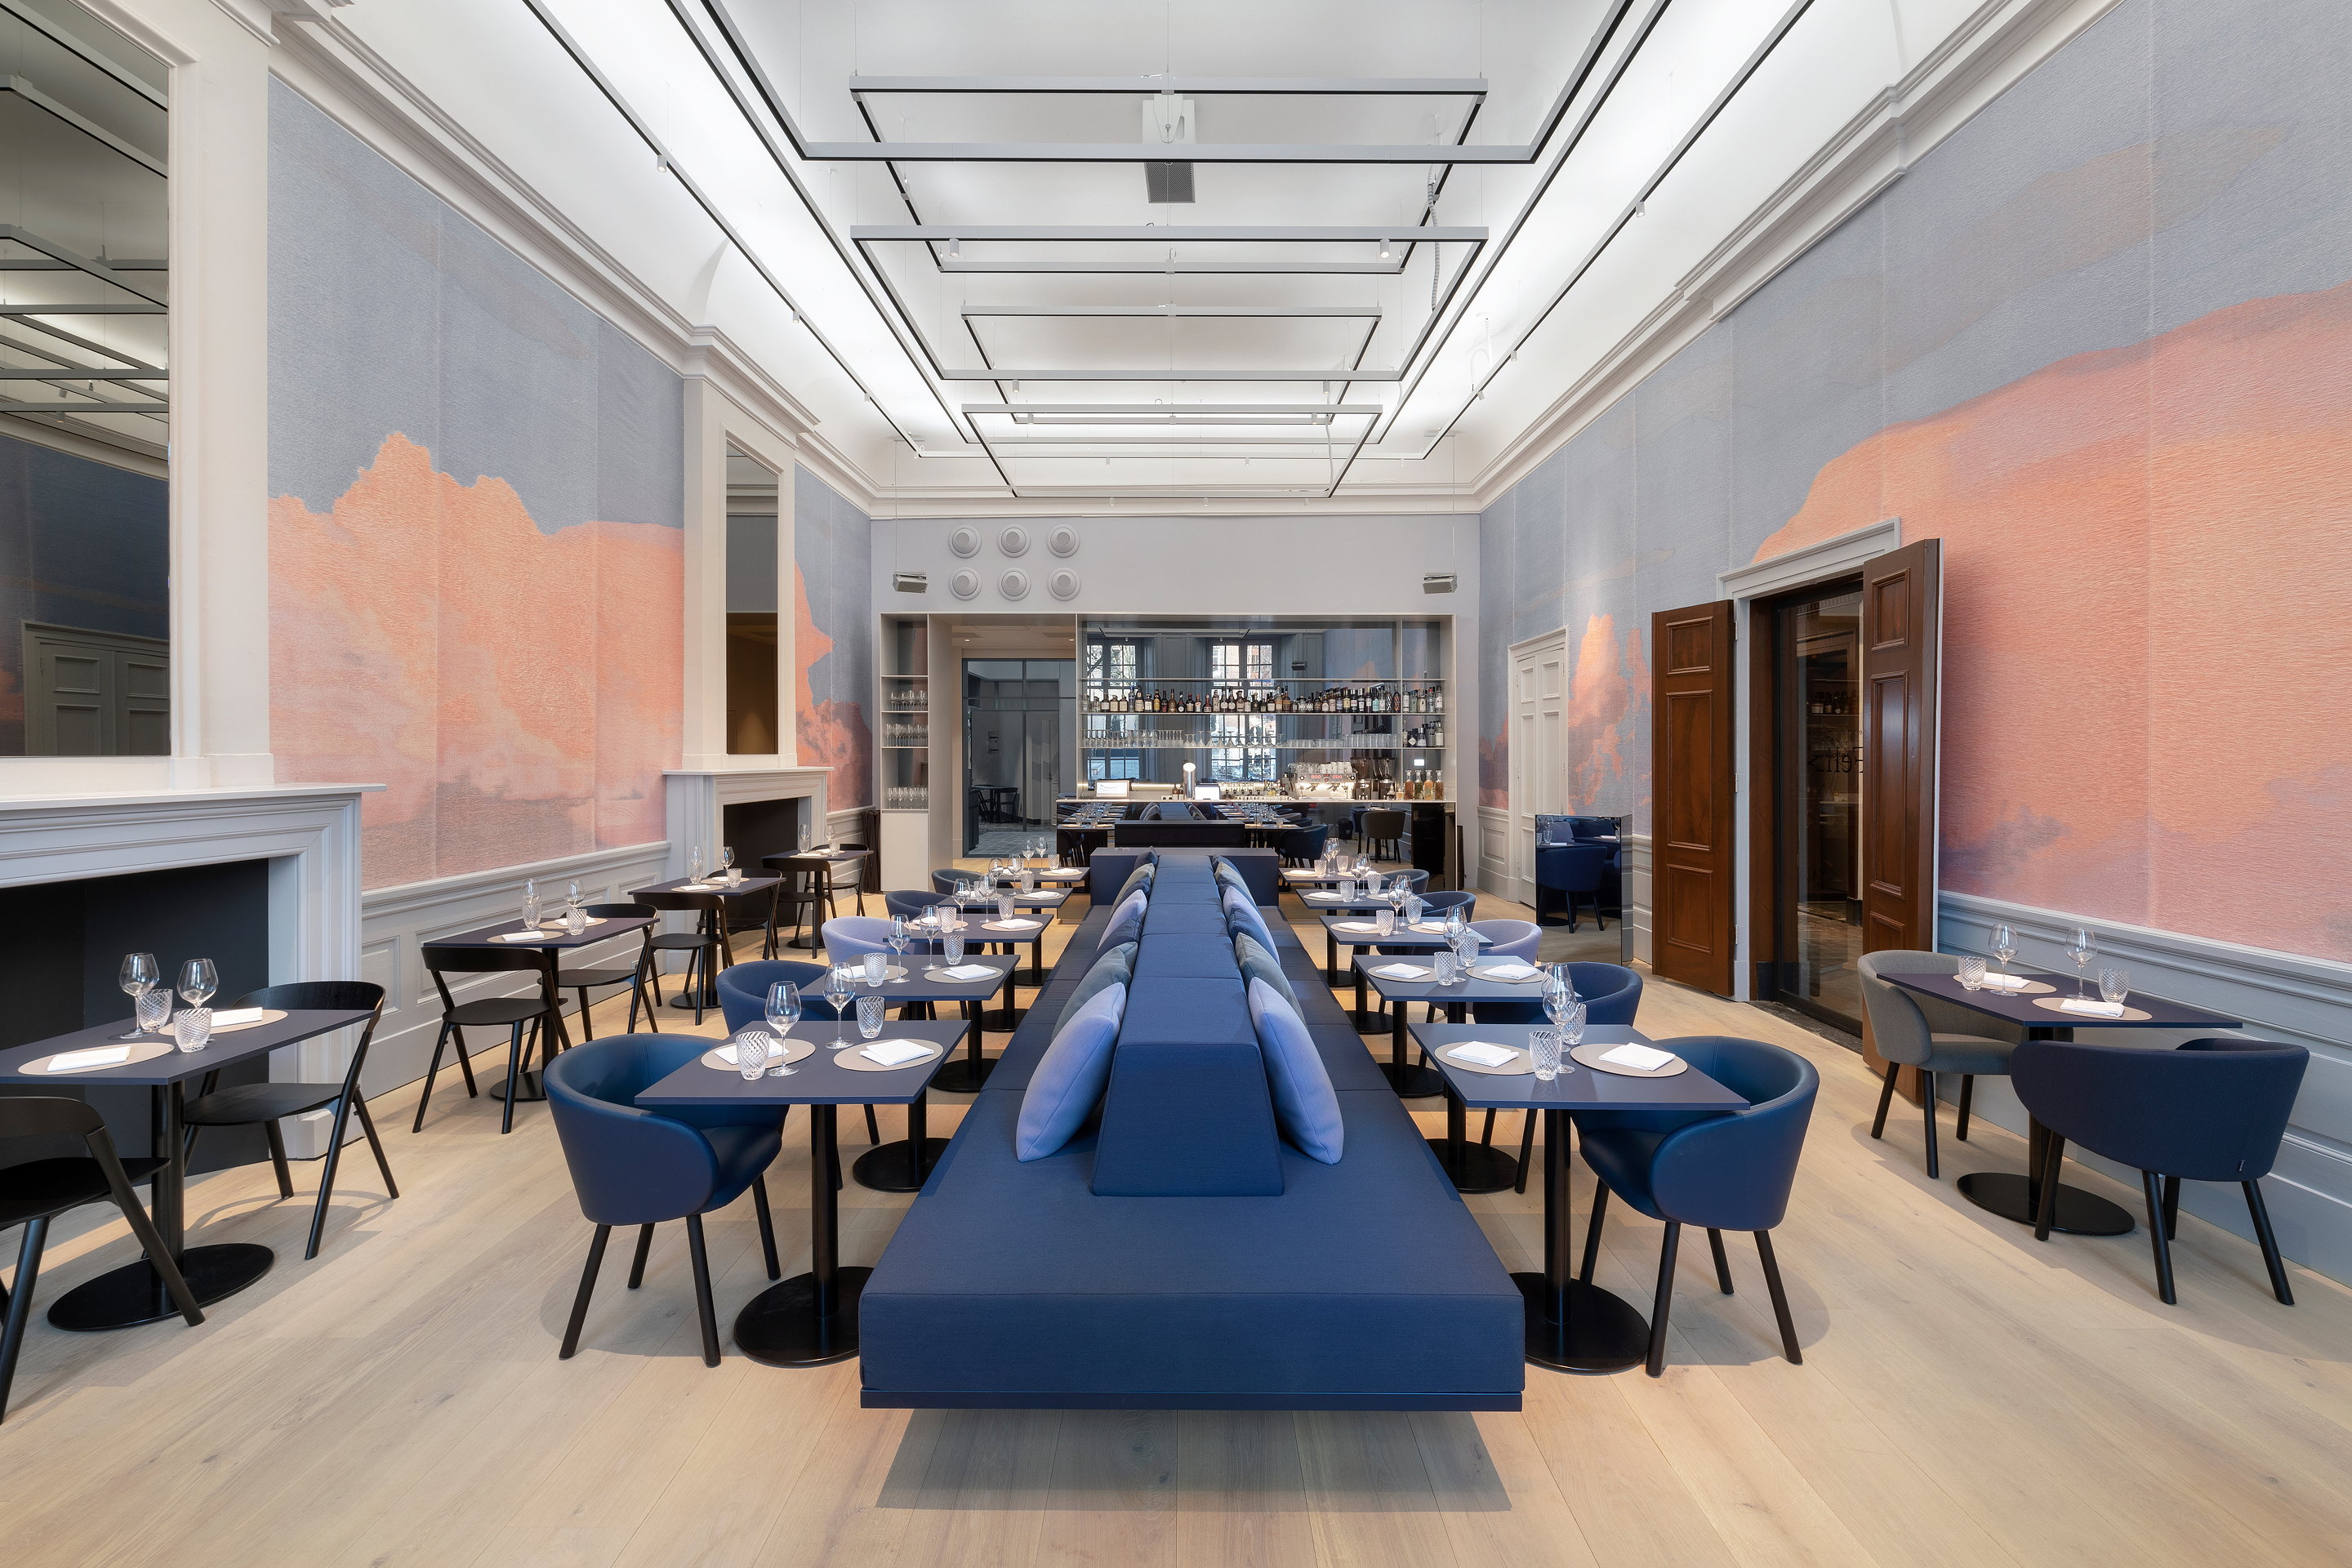 Flash in the pan: CIA opens new six-month restaurant - The